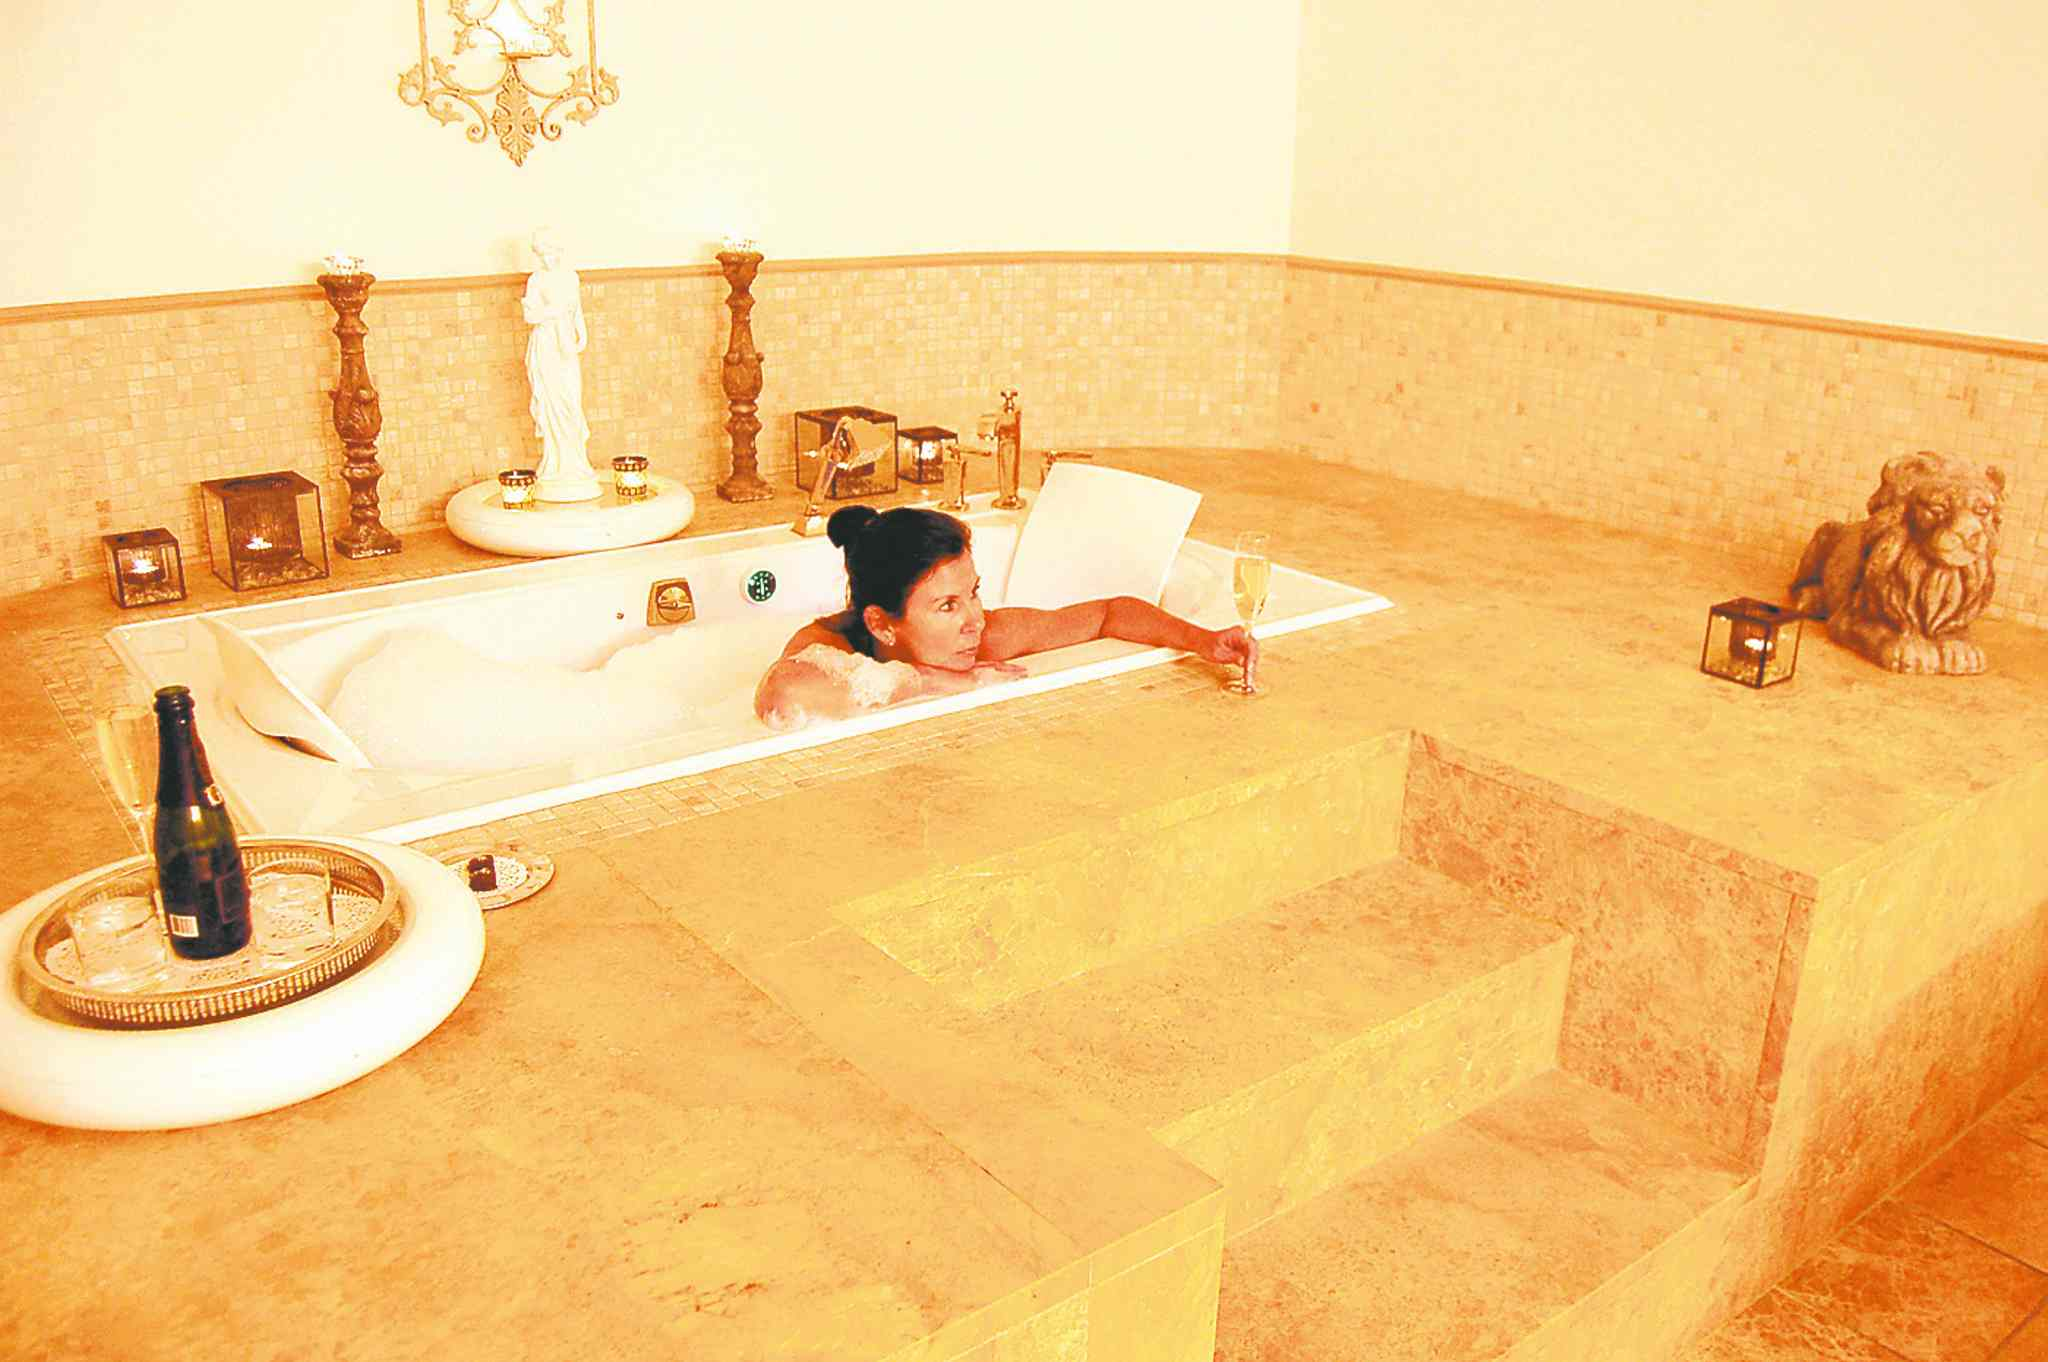 The Empress Sissi spa treatment features a milk and honey bath before a side-by-side couples massage.